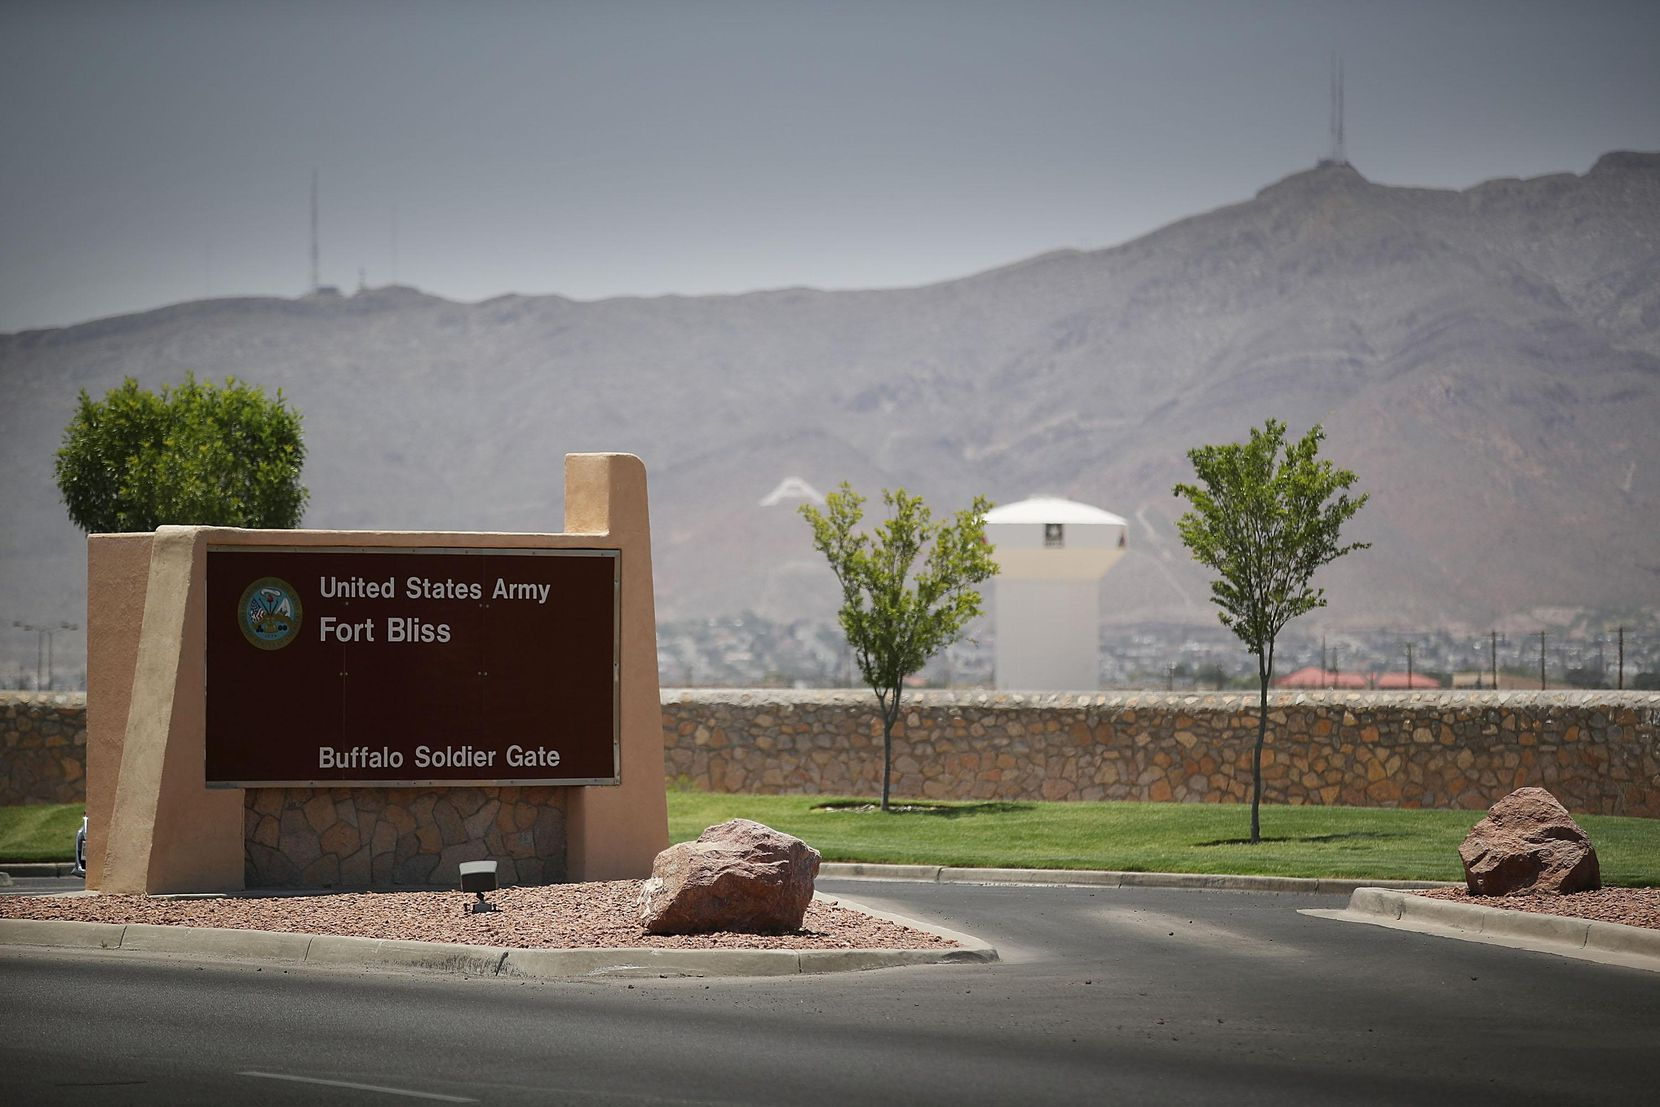 The entrance to Fort Bliss in El Paso